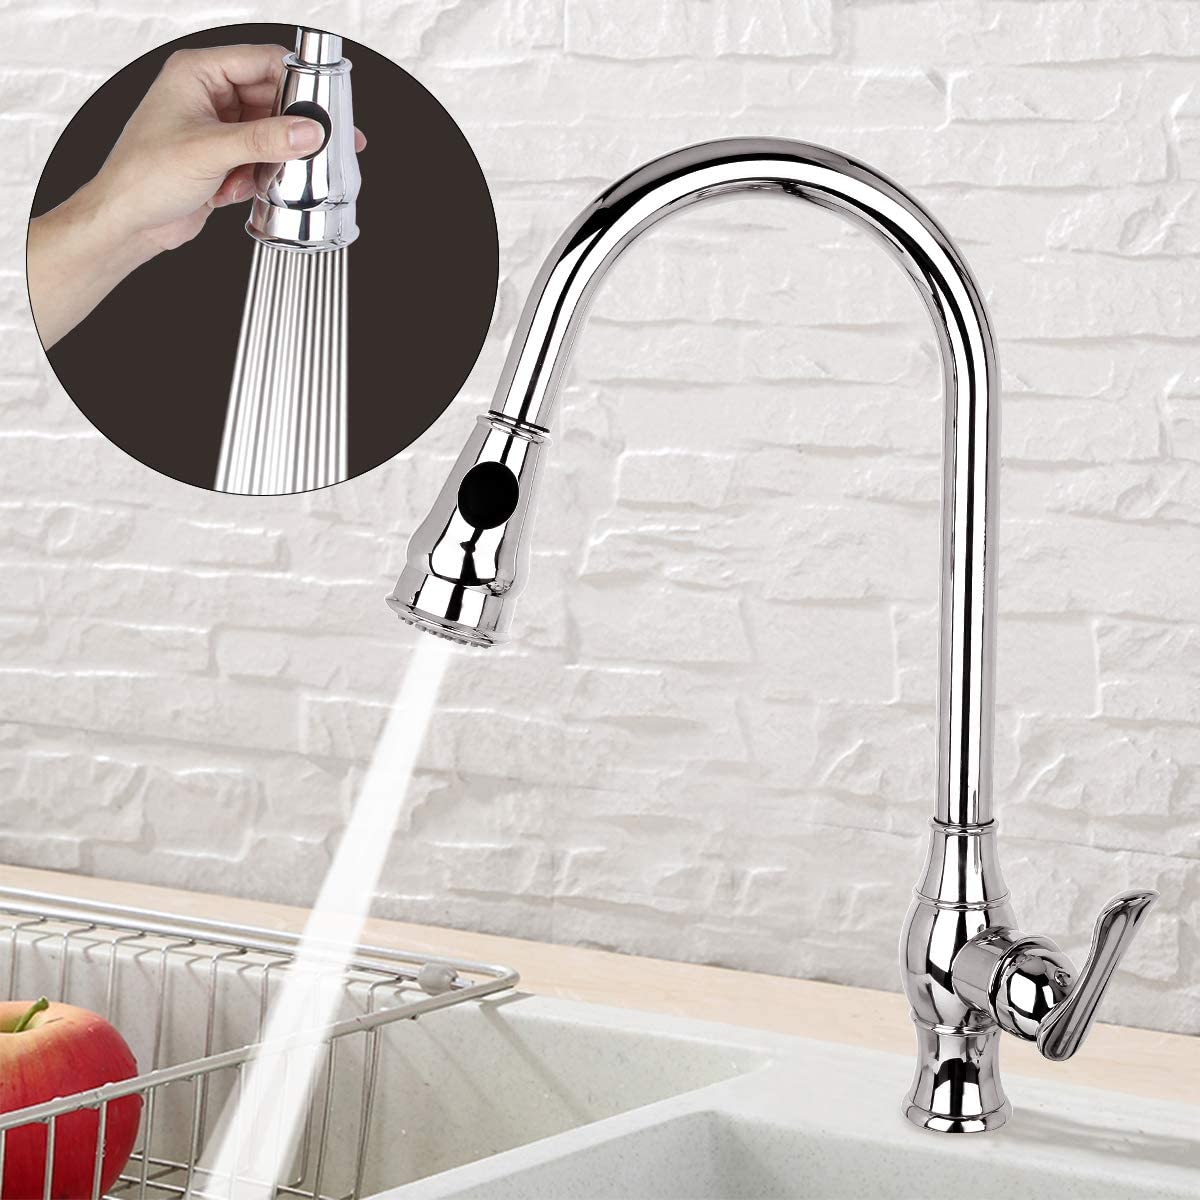 Lexqui High Arc Polished Chrome Single Handle Stainless Steel Kitchen Sink Faucet with Pull Down Sprayer